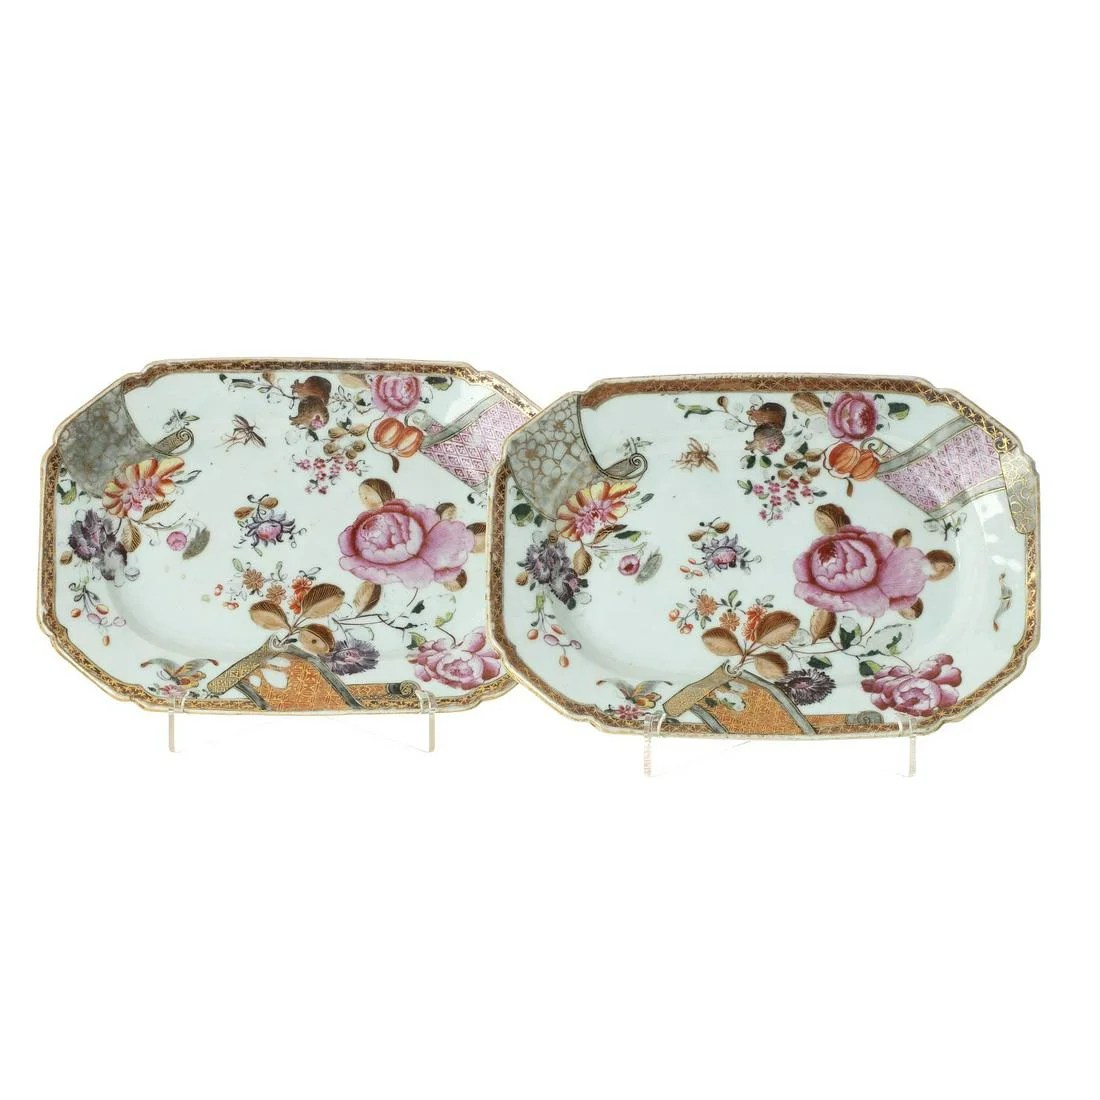 Pair of Chinese porcelain scroll platters, Qianlong